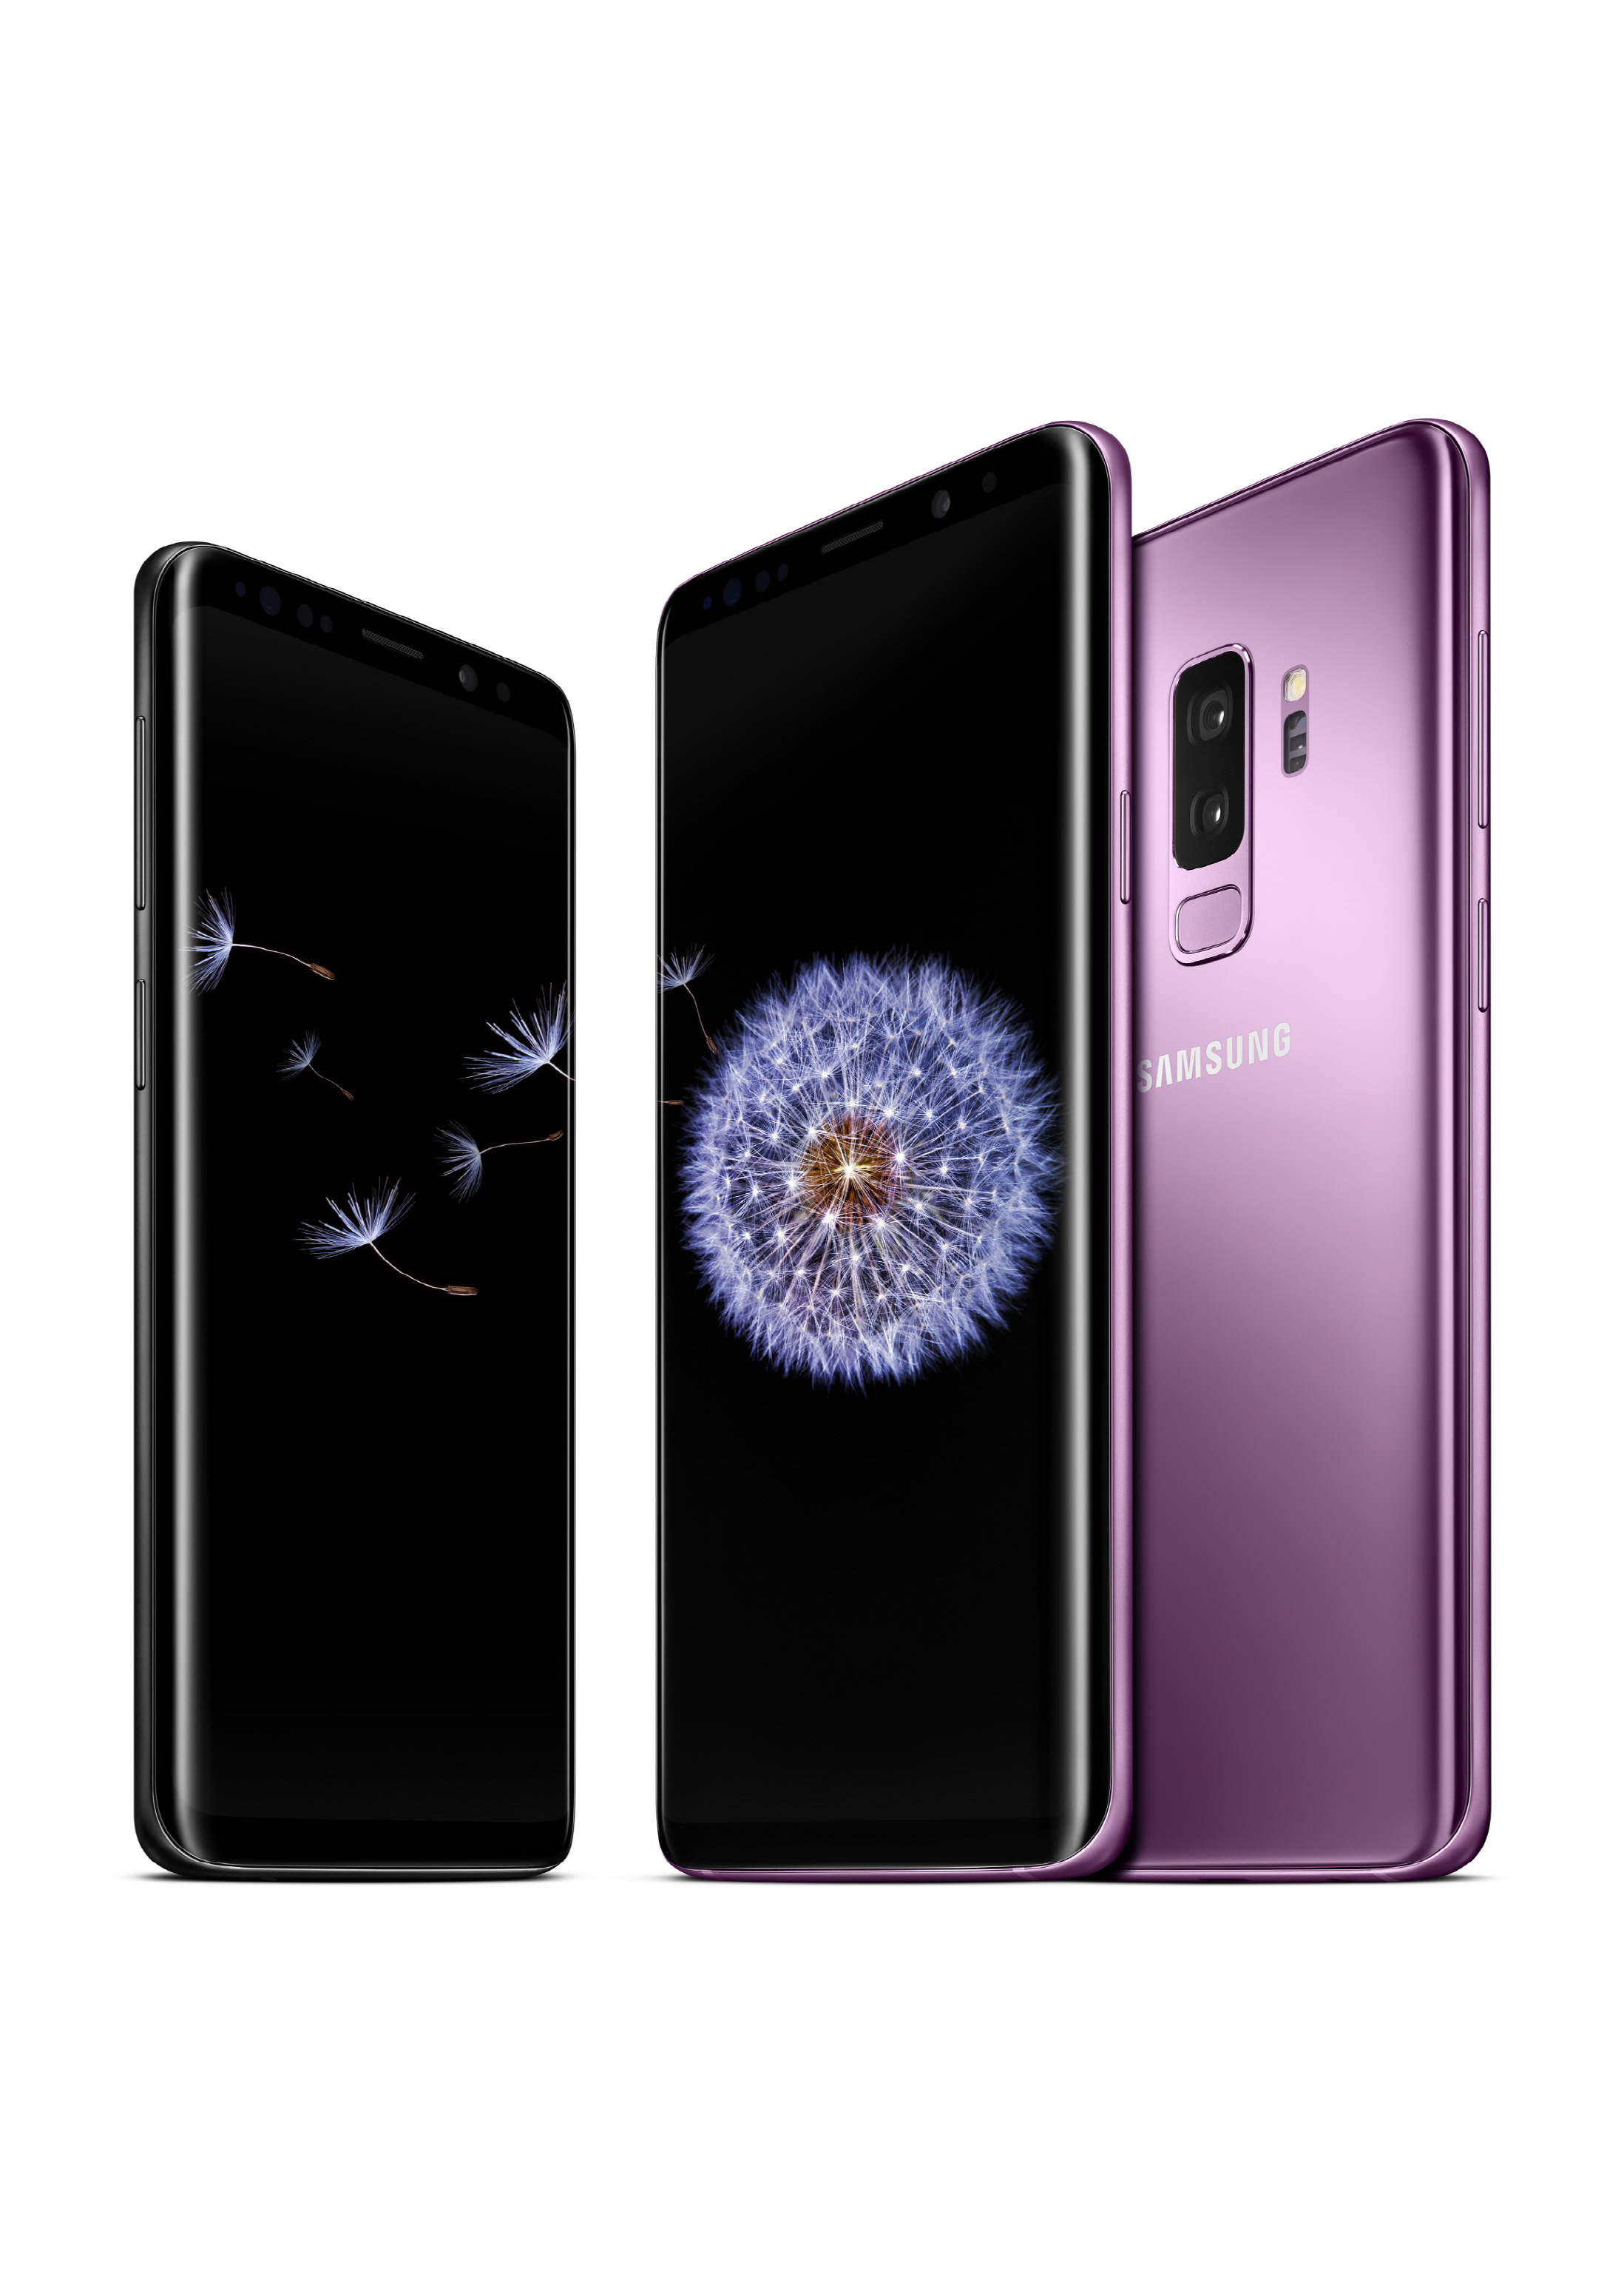 built-for-the-way-we-communicate-today-samsung-galaxy-s9-and-s9_26608961558_o.jpg